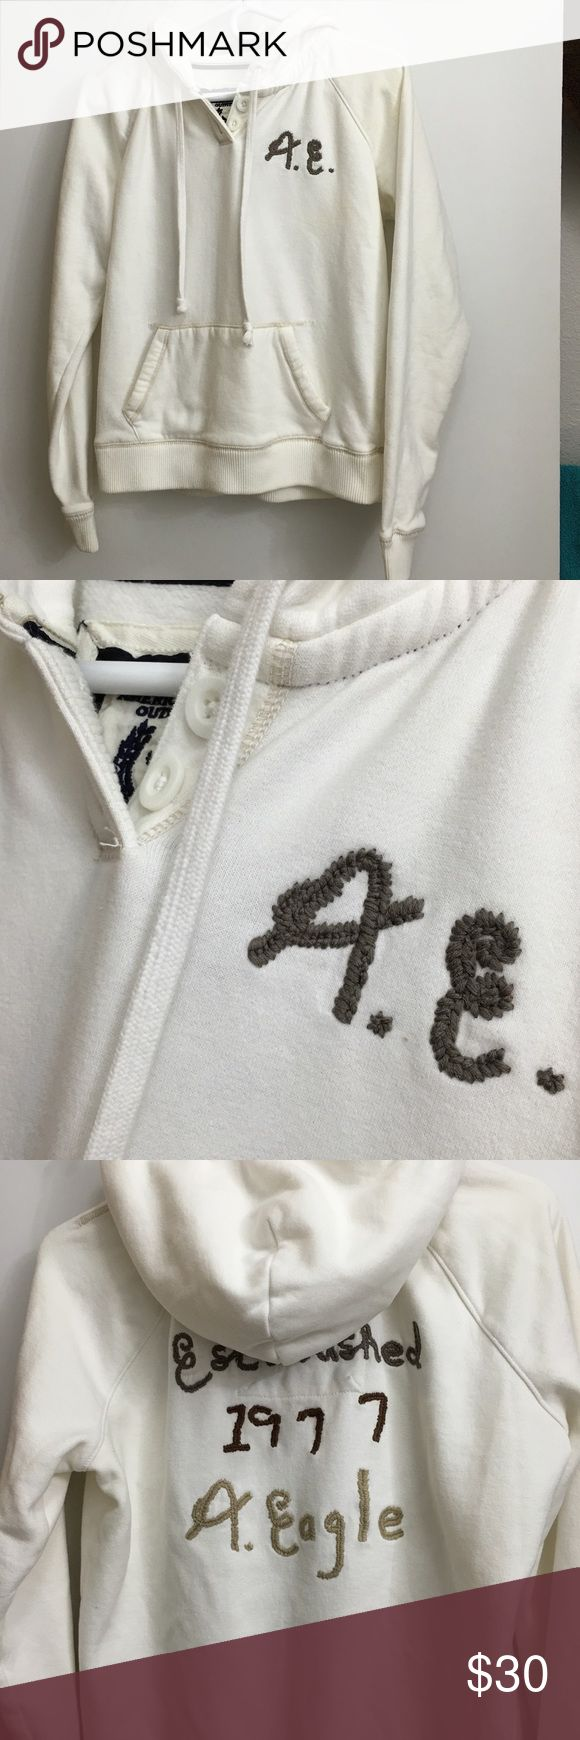 🌷PRICE DROP🌷 American Eagle Sweatshirt Amazingly soft cream colored hoodie from American Eagle. This was hardly worn. Size L. So cute and in great condition! Smoke and pet free home. American Eagle Outfitters Tops Sweatshirts & Hoodies